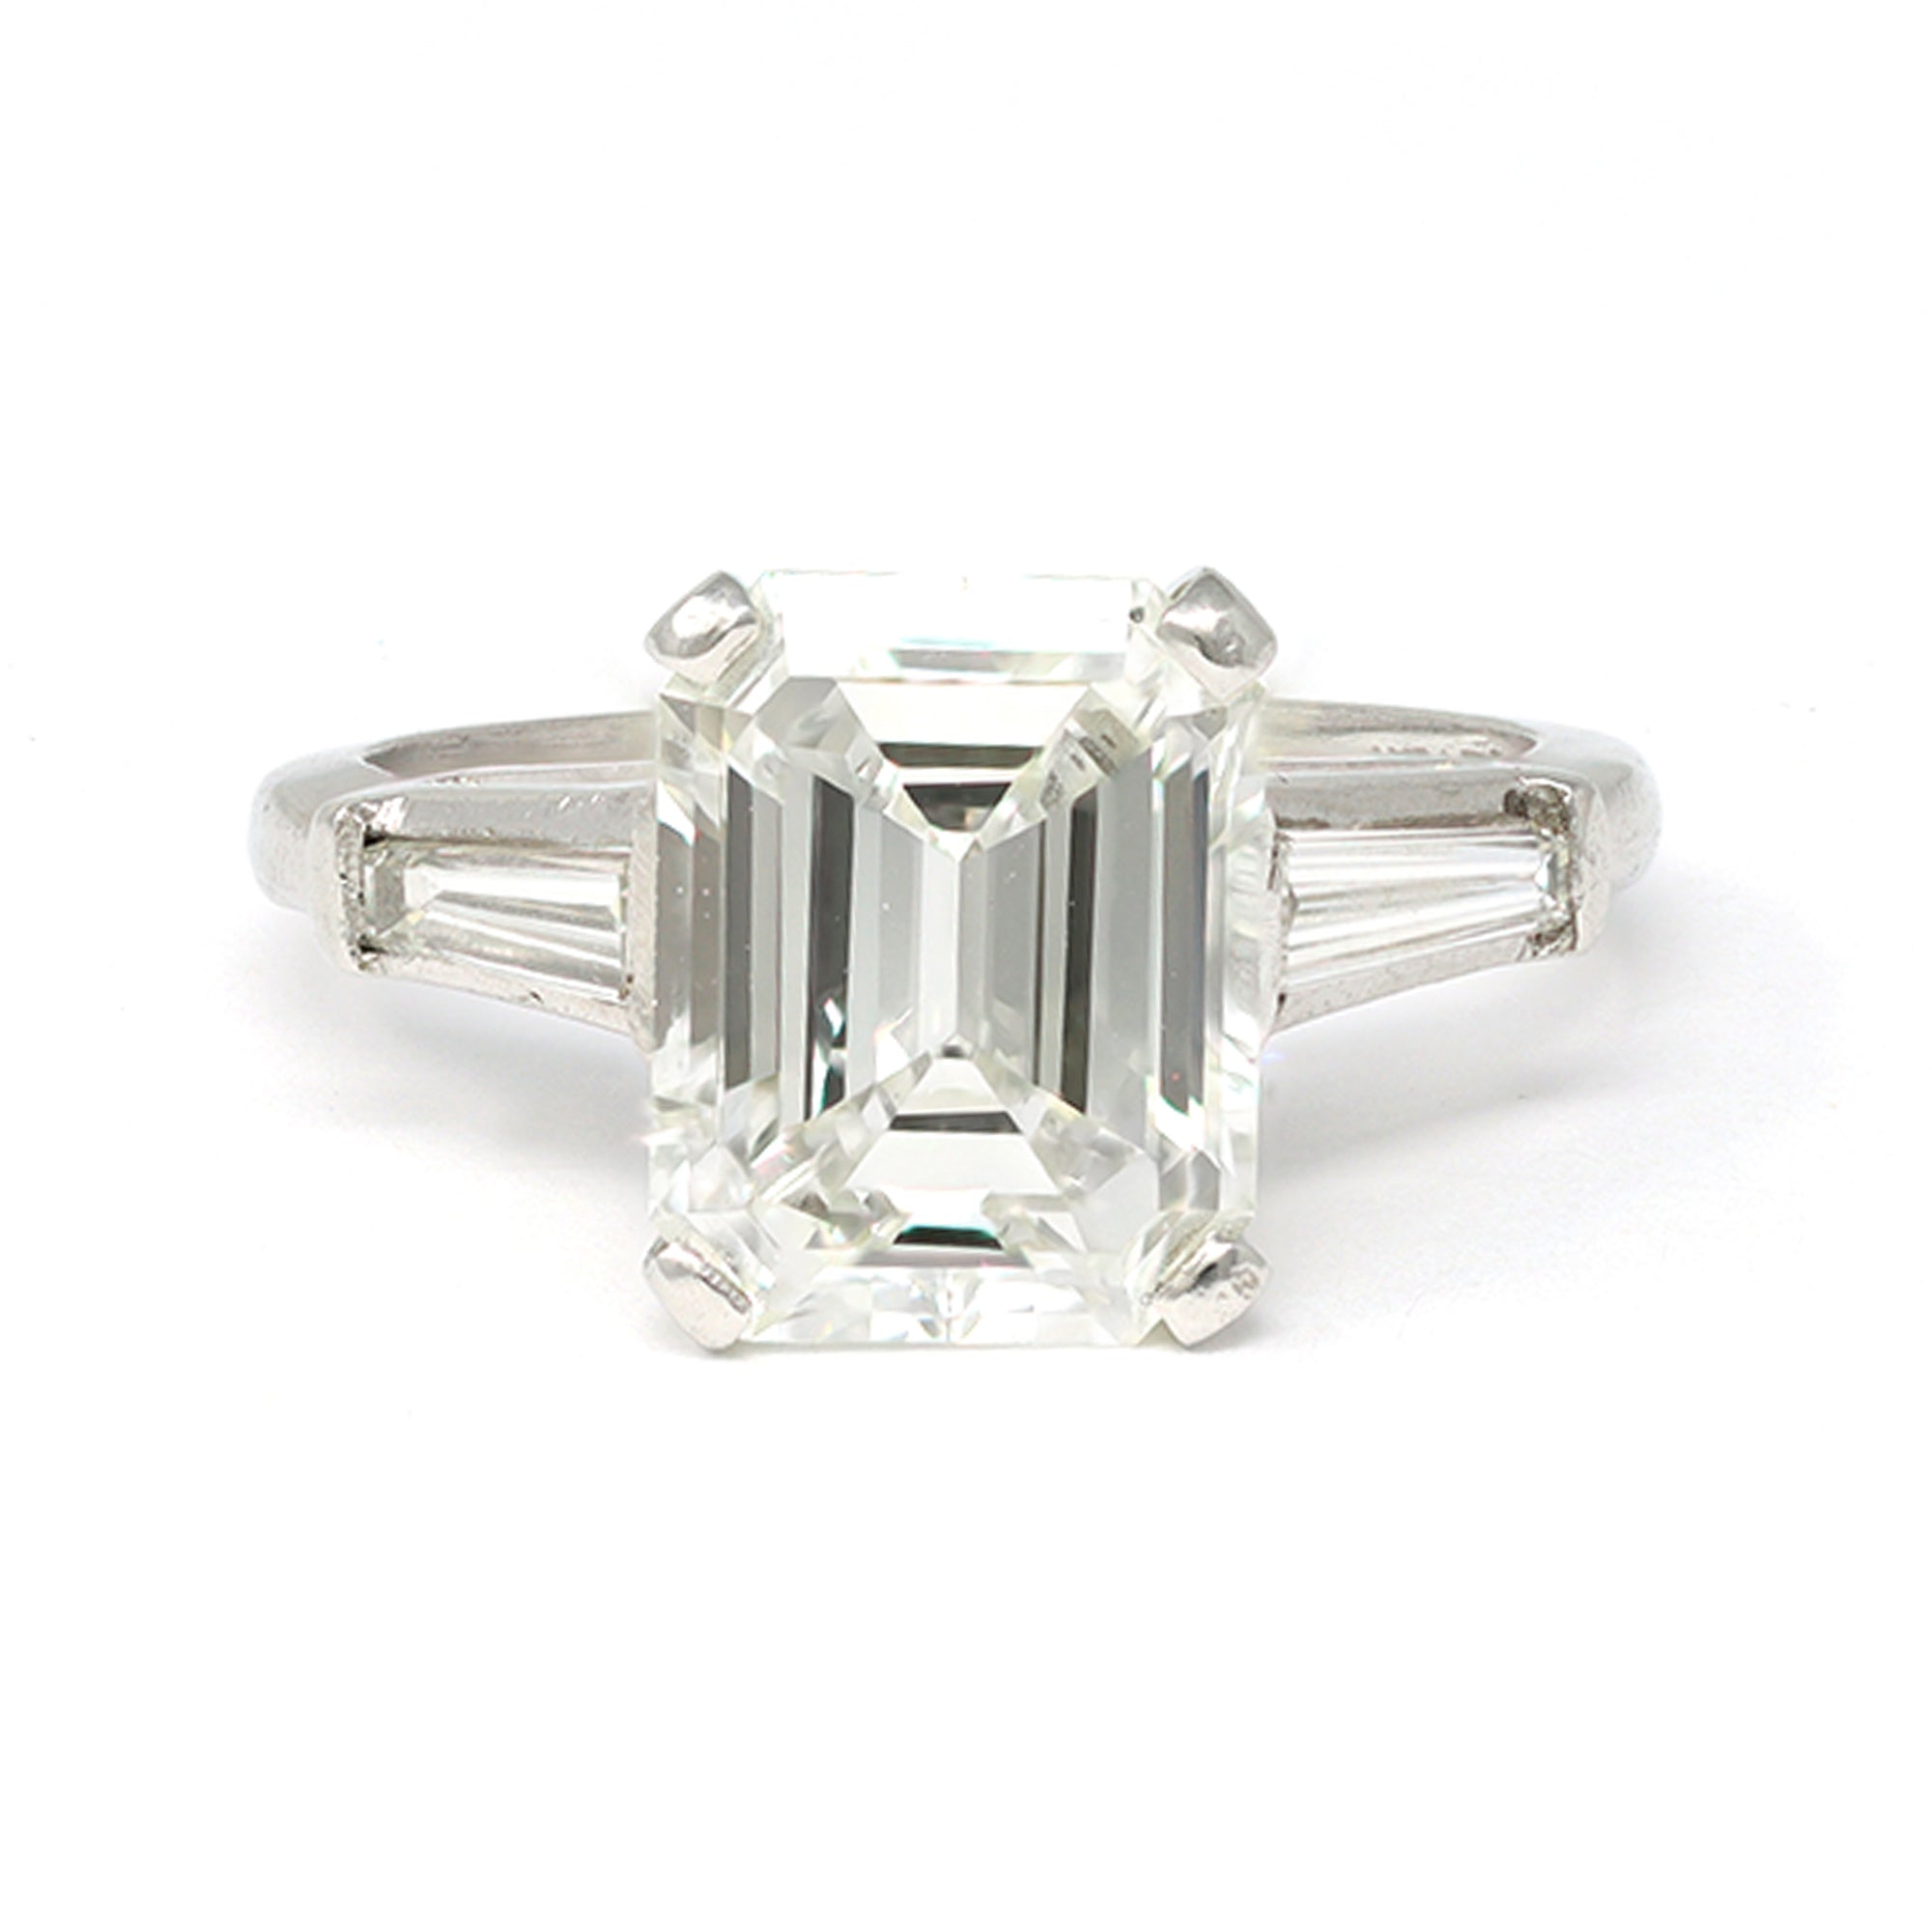 3.83 Carat Emerald-Cut Diamond Engagement Ring in Platinum with GIA Report front view